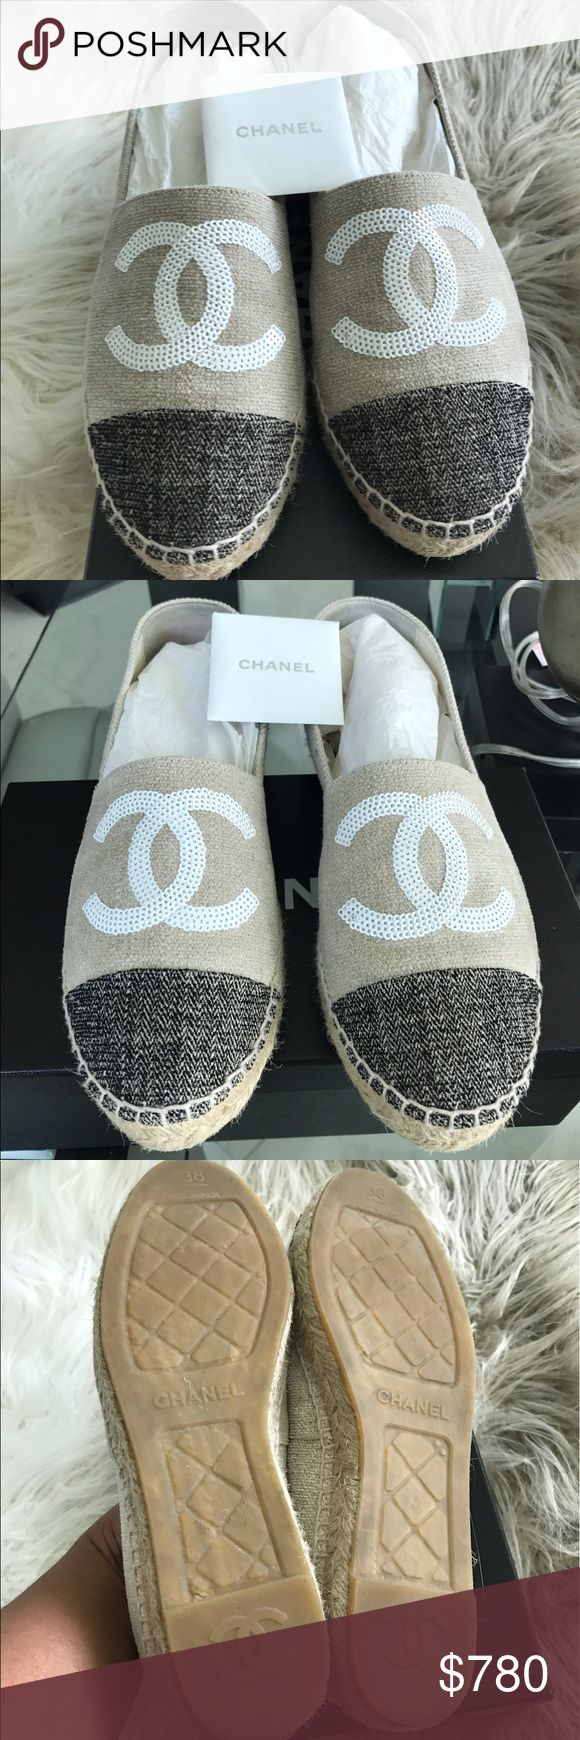 Chanel espadrilles beige/black size 38 Almost like new condition Chanel black and beige espadrilles, size 38 ( would fit a US size 7 perfect ) it comes with box and authenticity card! CHANEL Shoes Espadrilles